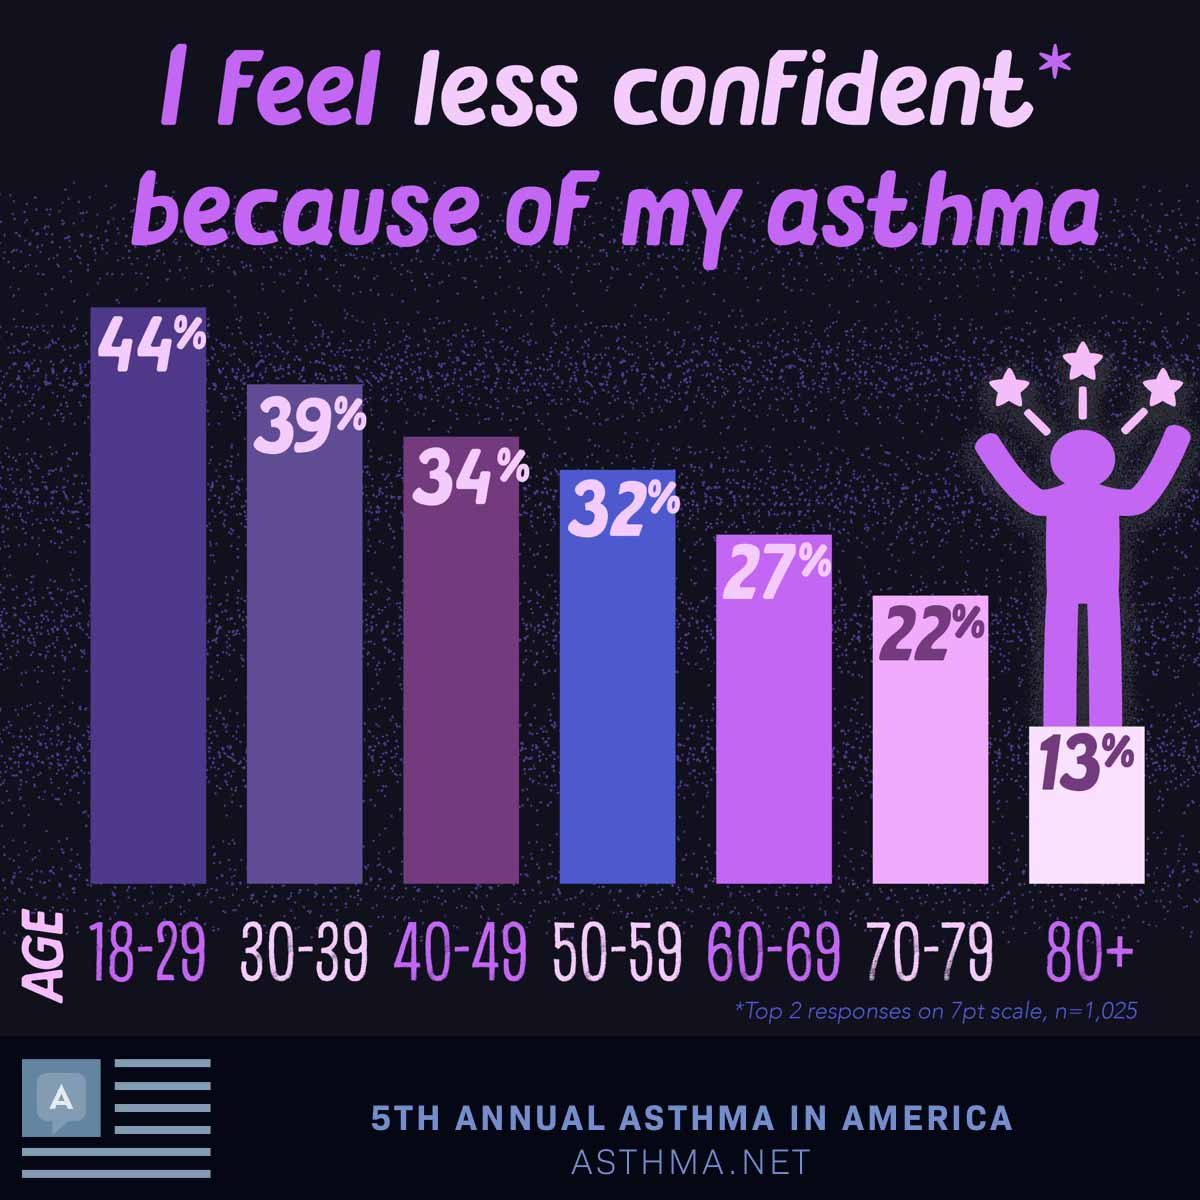 I feel less confident because of my asthma: Ages18-29: 44%30-39: 39%40-49: 34%50-59: 32%60-69: 27%70-79: 22%80+: 13%